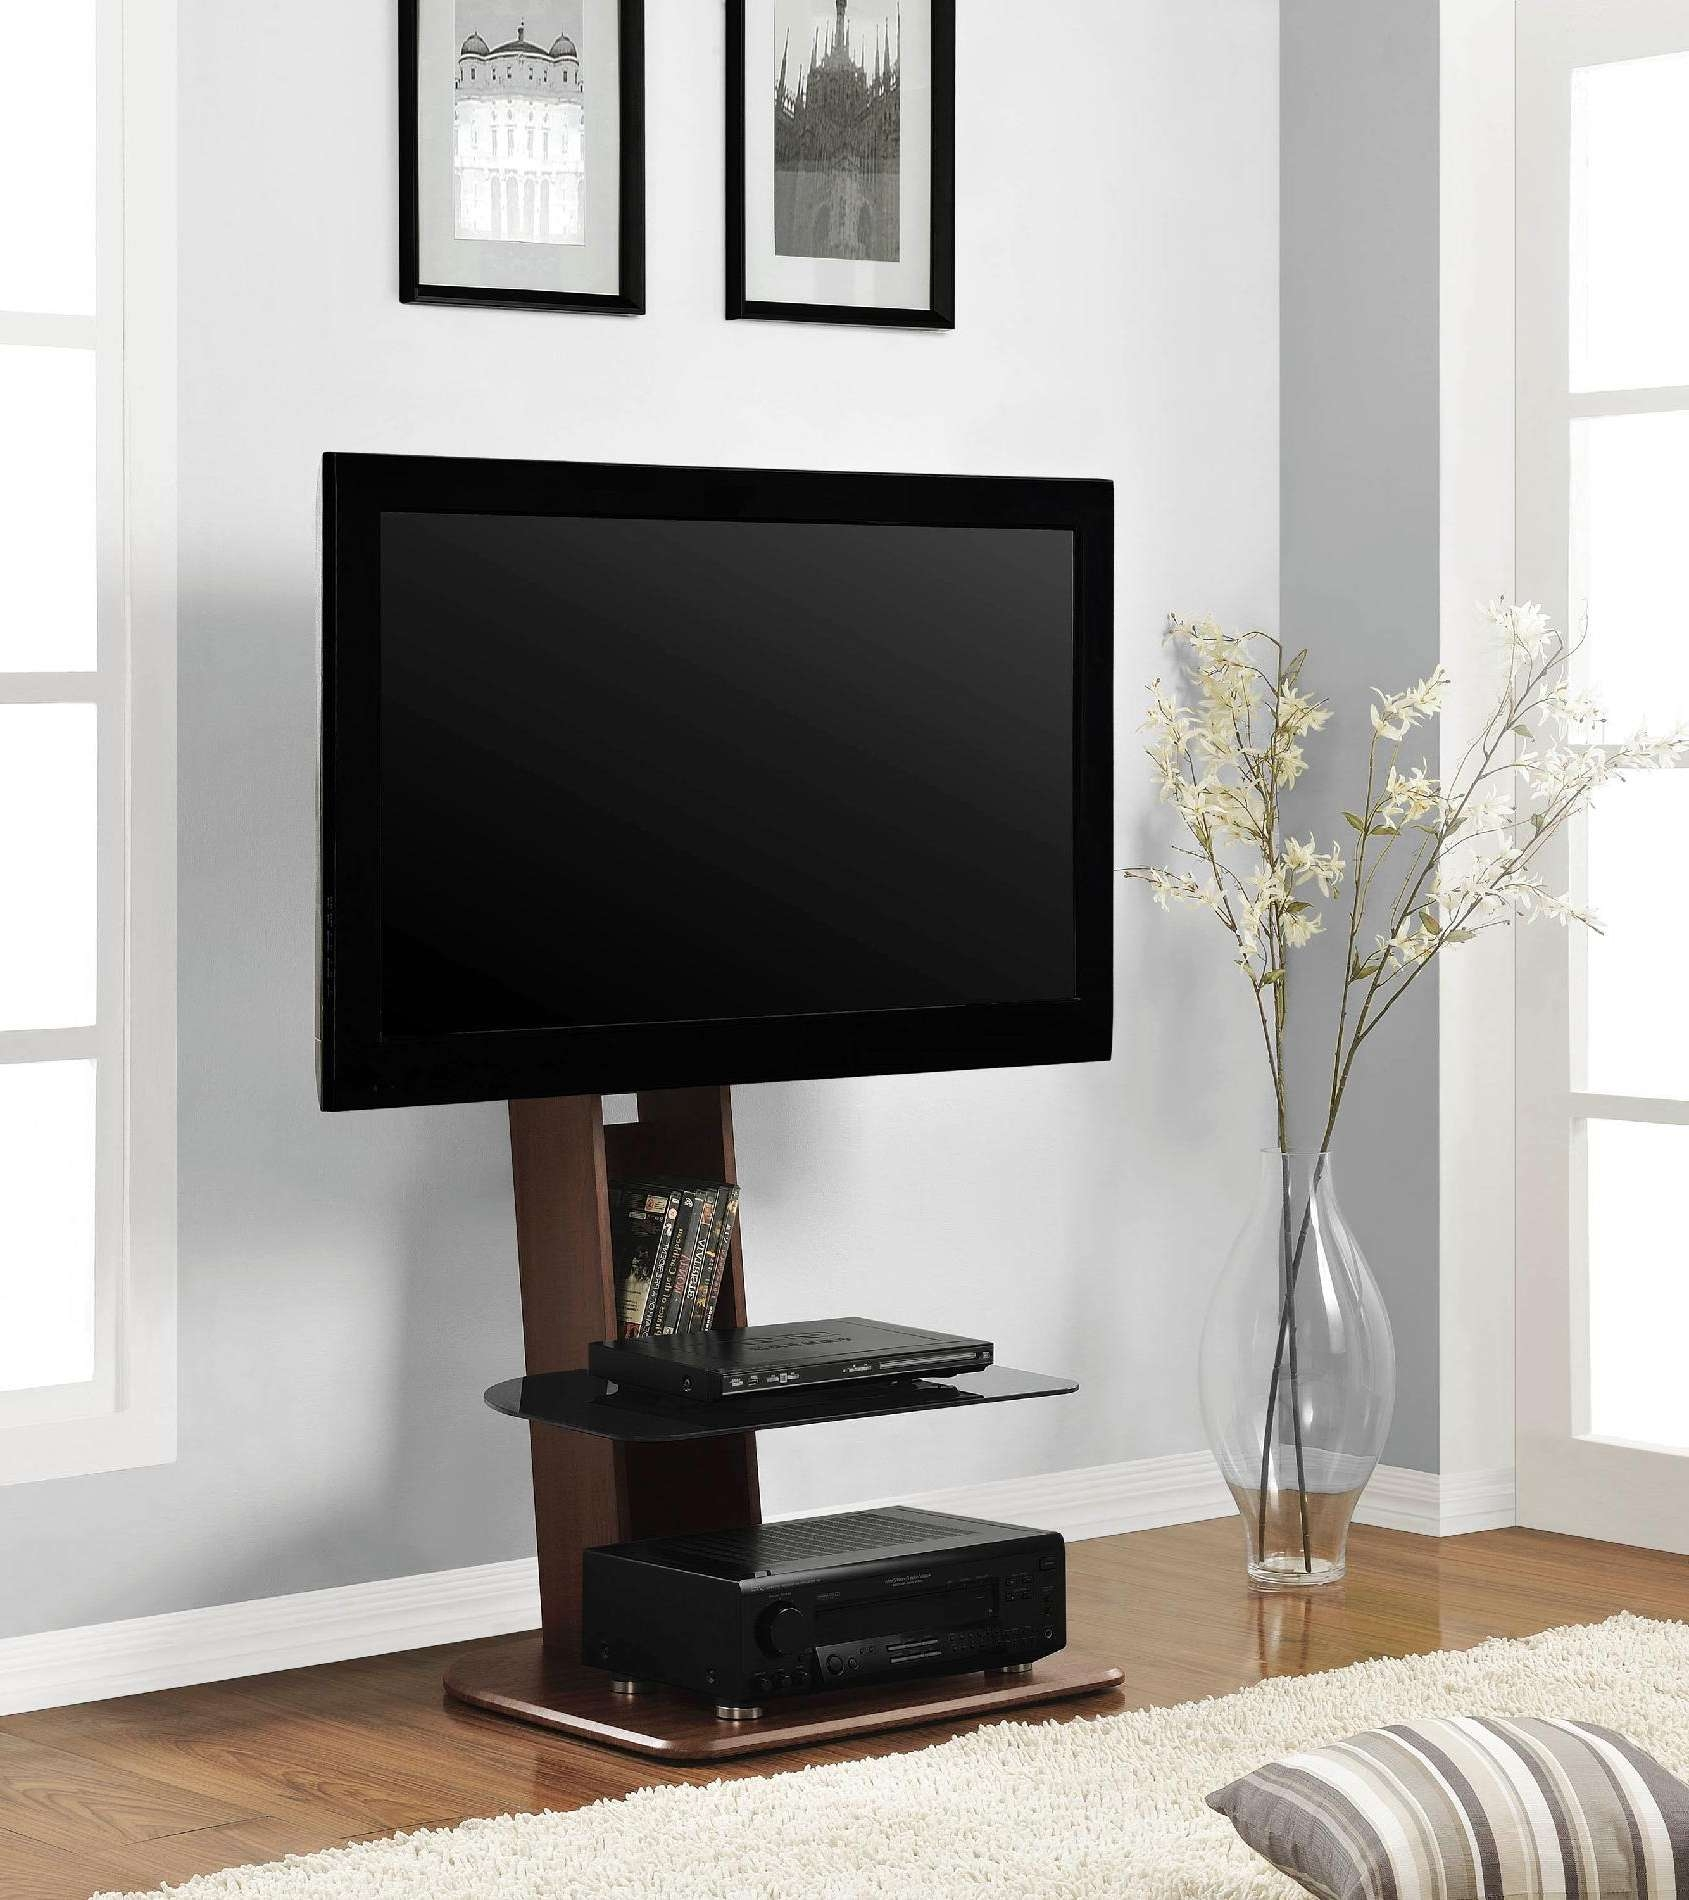 Minimalist Brown Walnut Wood Flat Screen Tv Stand With Black Intended For Acrylic Tv Stands (View 8 of 15)